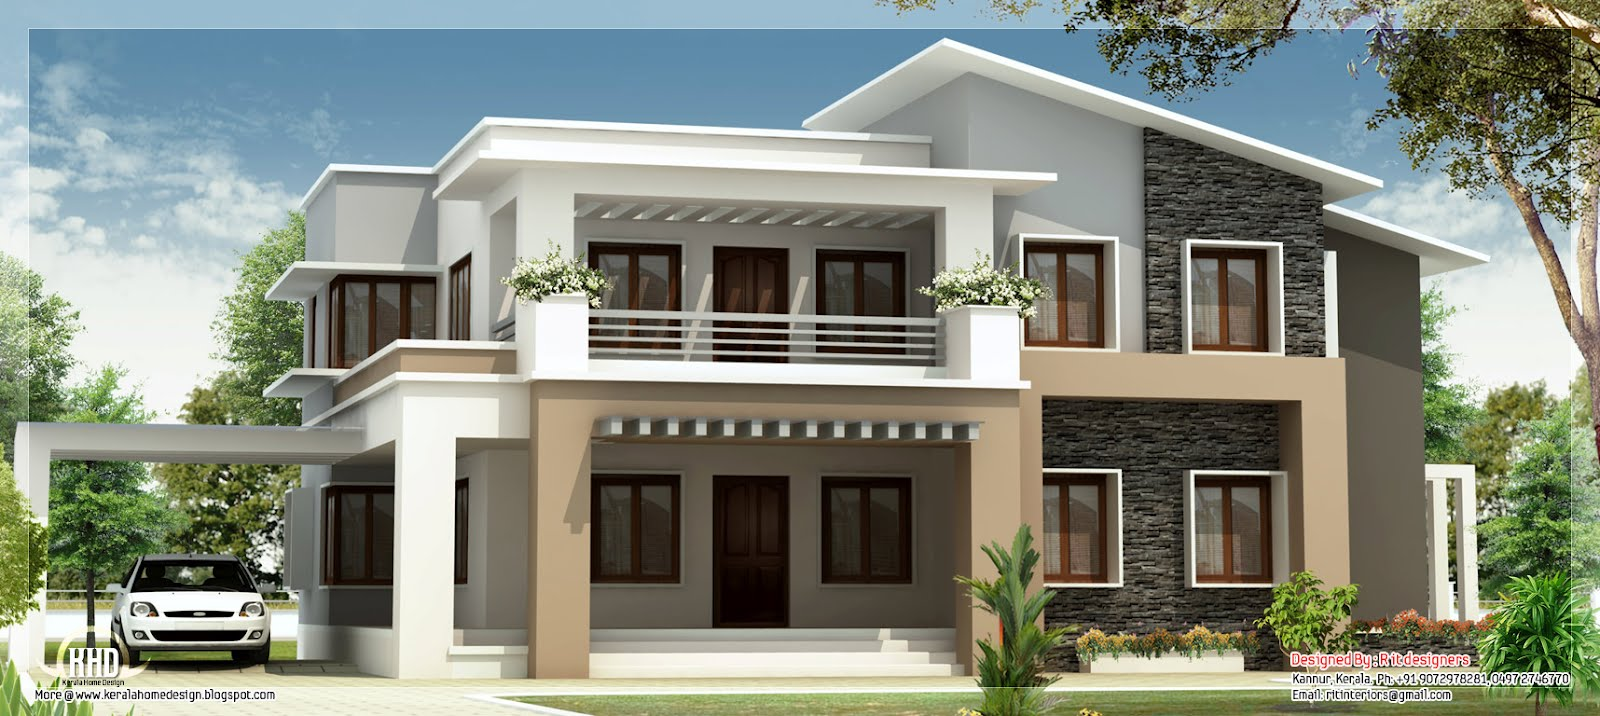 Very Best Double Floor House Design 1600 x 716 · 210 kB · jpeg